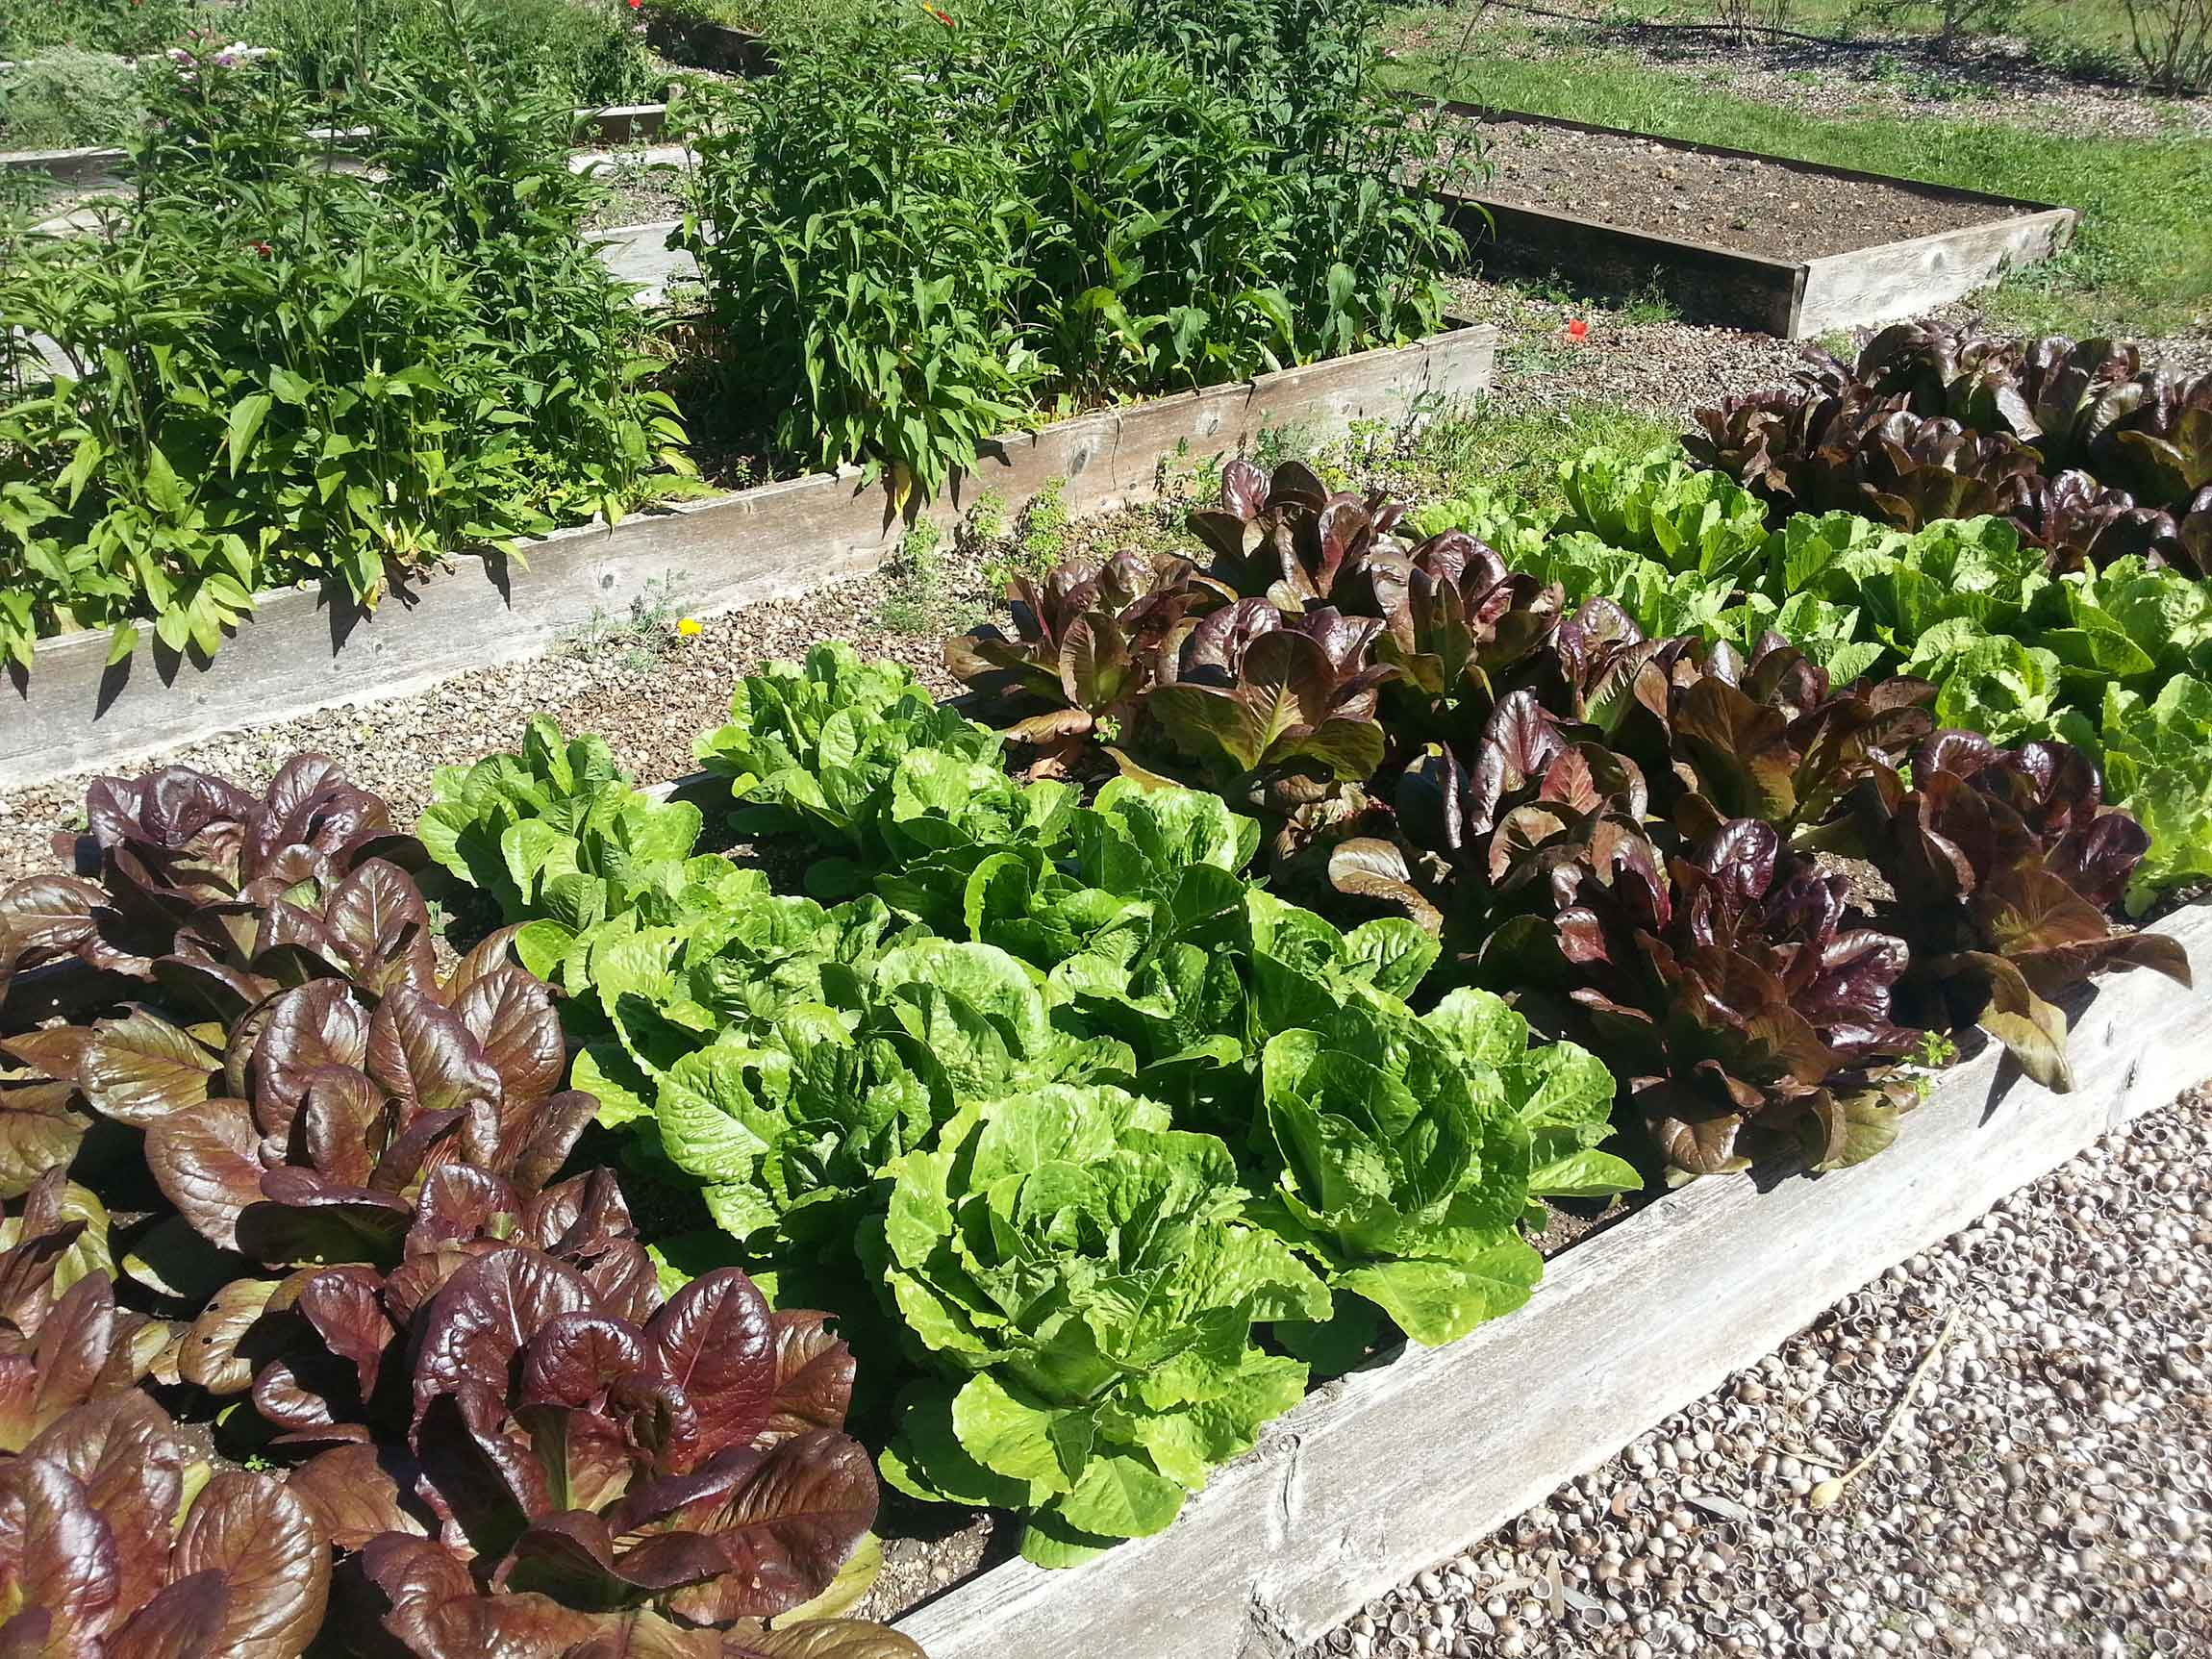 How to eat healthy on a budget: Grow your own greens